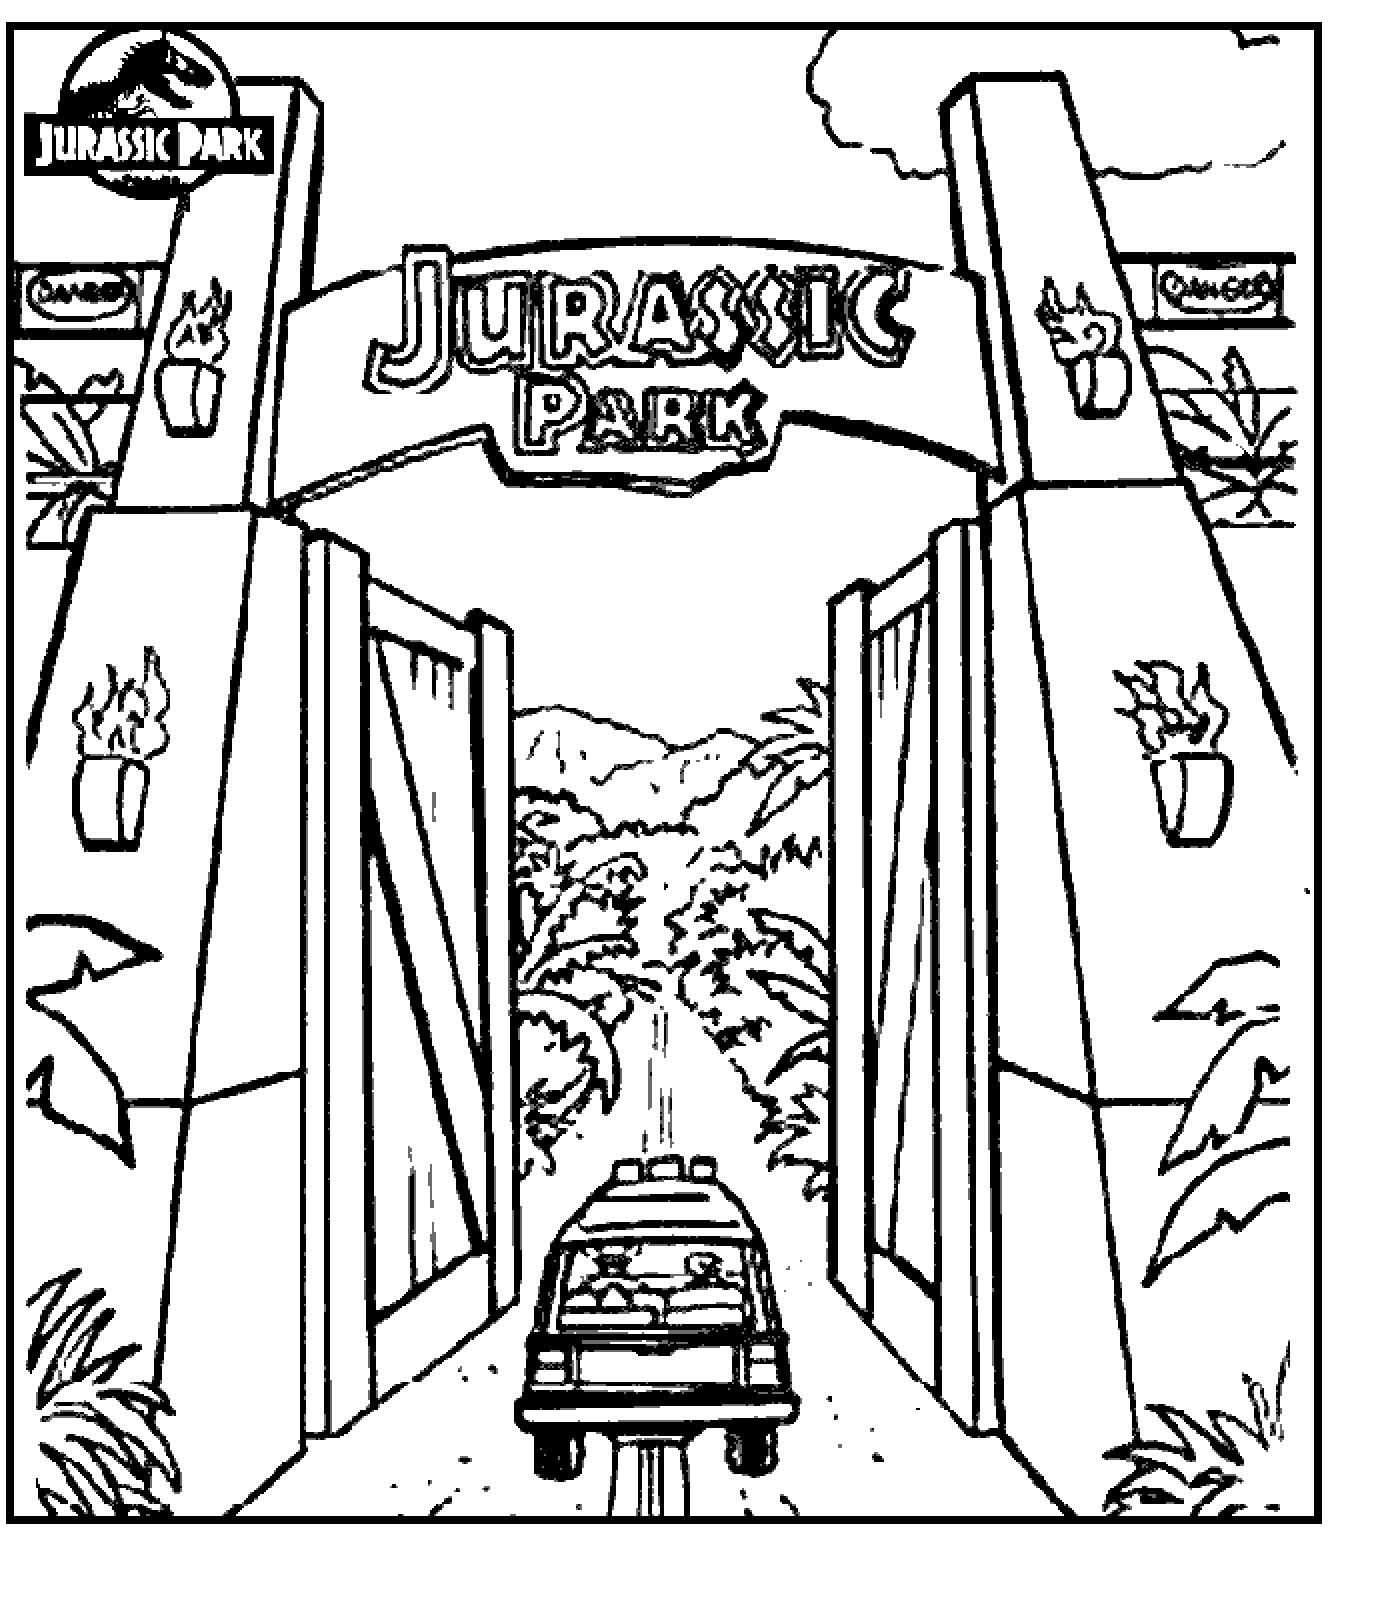 jurassic park coloring sheets coloring pages jurassic park gate jurassic park party. Black Bedroom Furniture Sets. Home Design Ideas